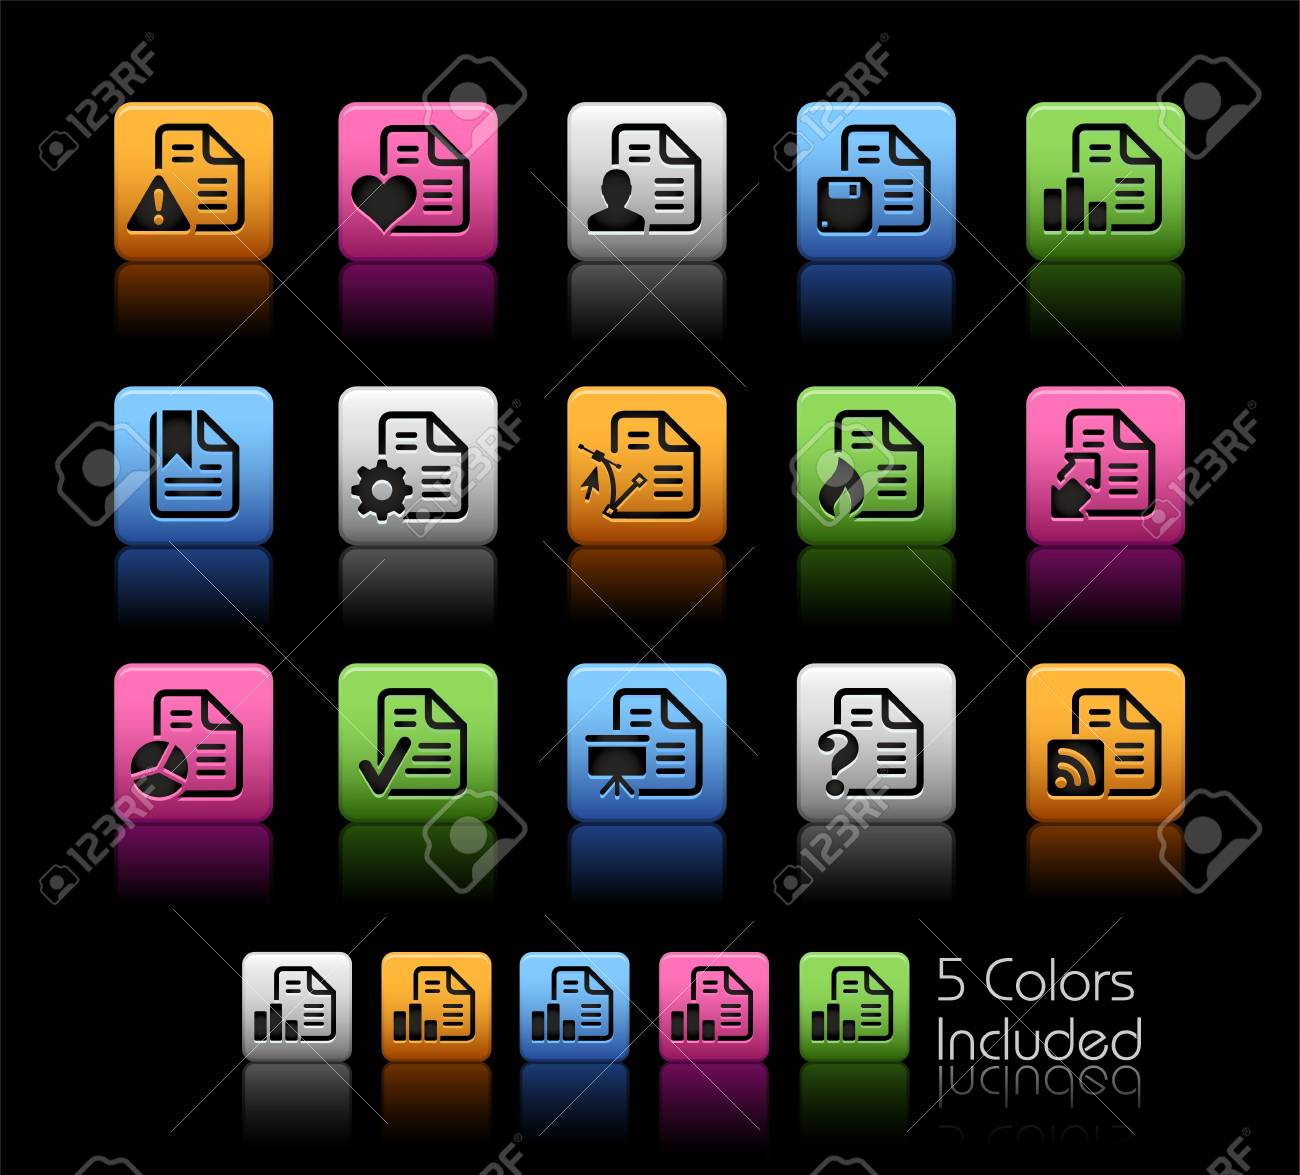 Documents Icons 2 - Color Box_It includes 5 color versions for each icon in different layers Stock Vector - 16189317